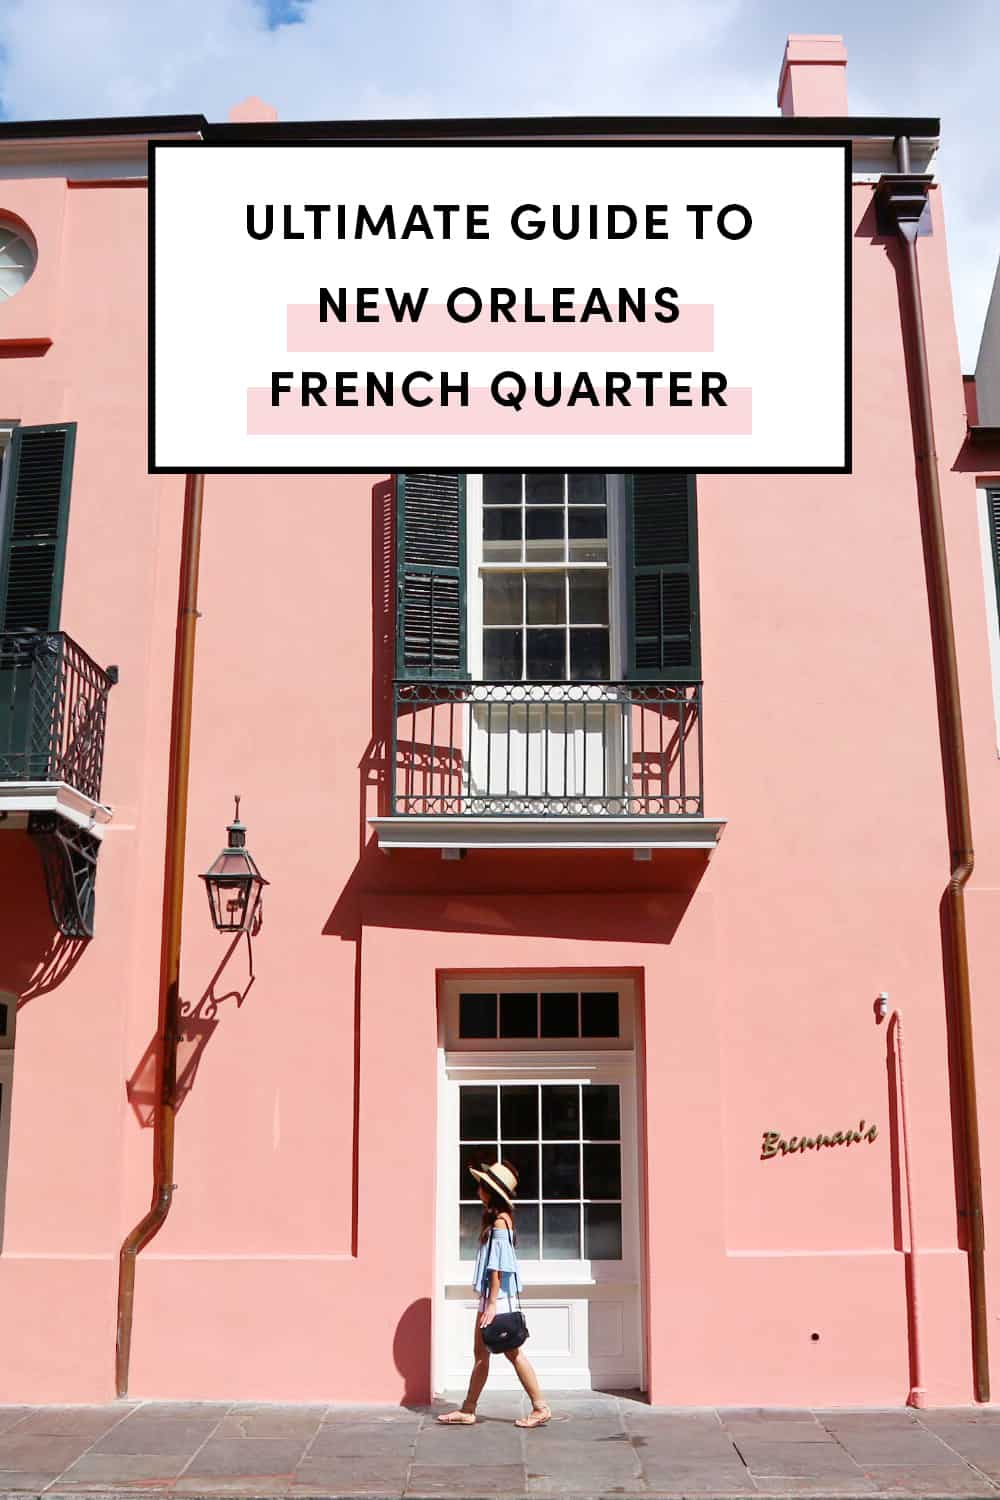 Ultimate Guide To New Orleans French Quarter